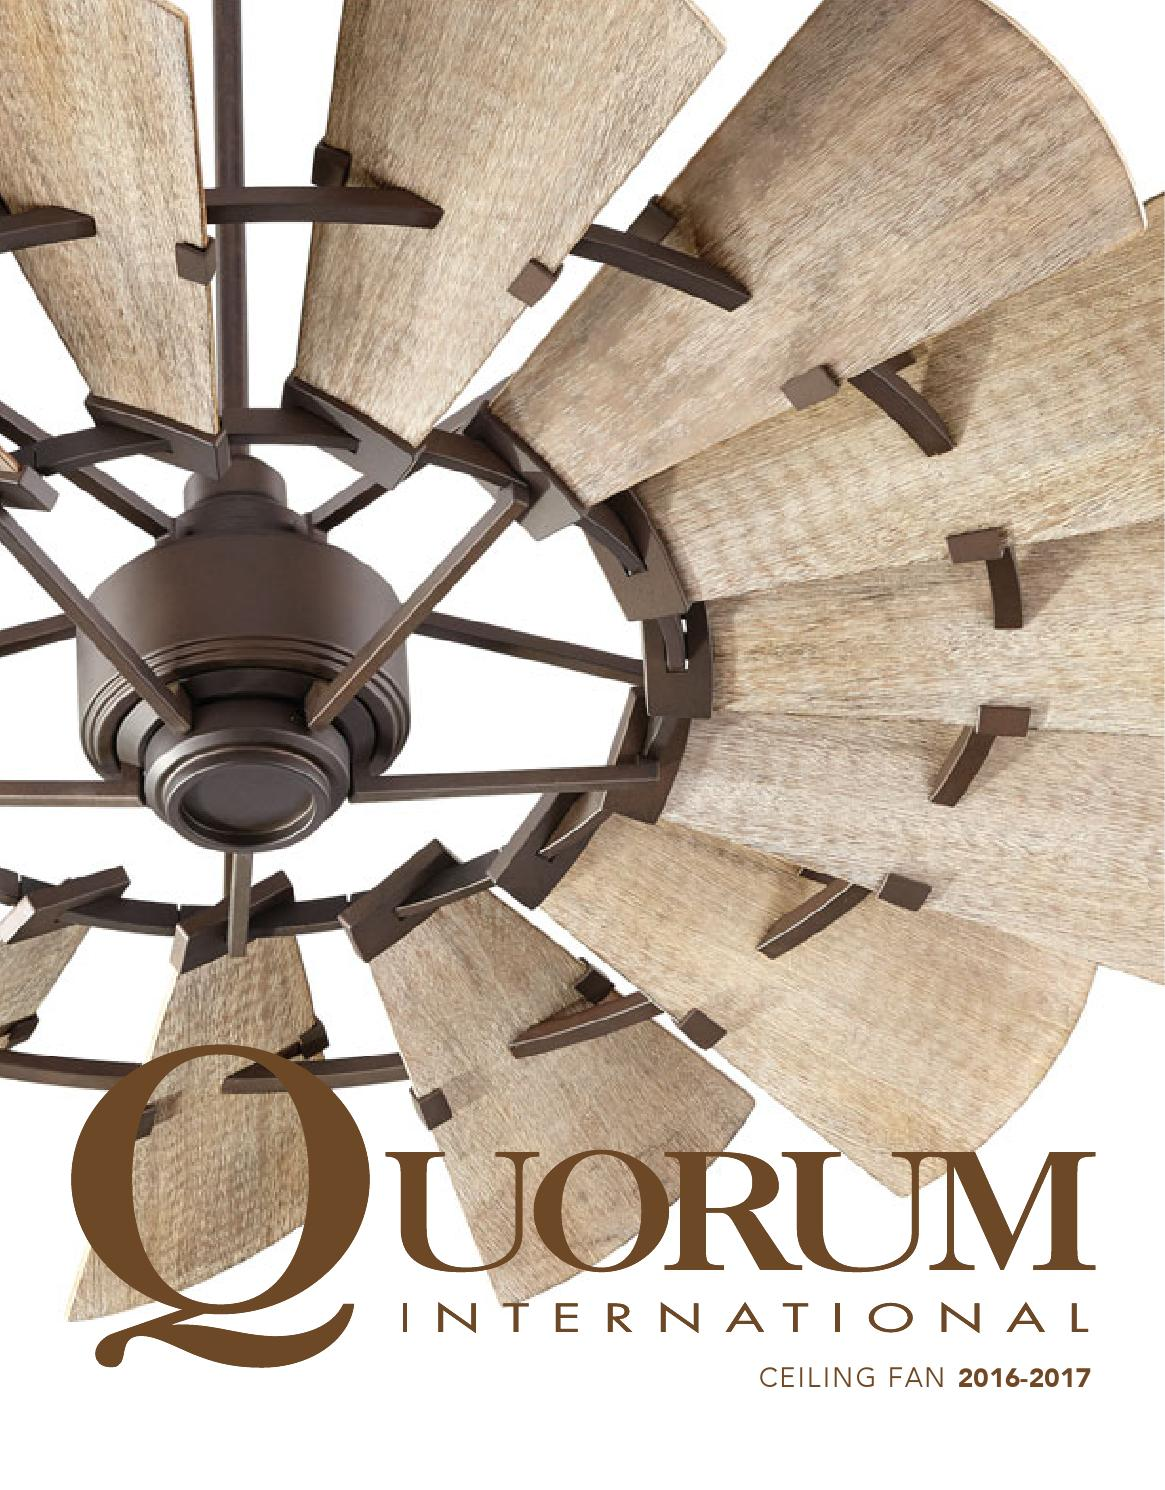 quorum ceiling fans 2016 indoor ceiling fans 2016 fanstfg - issuu